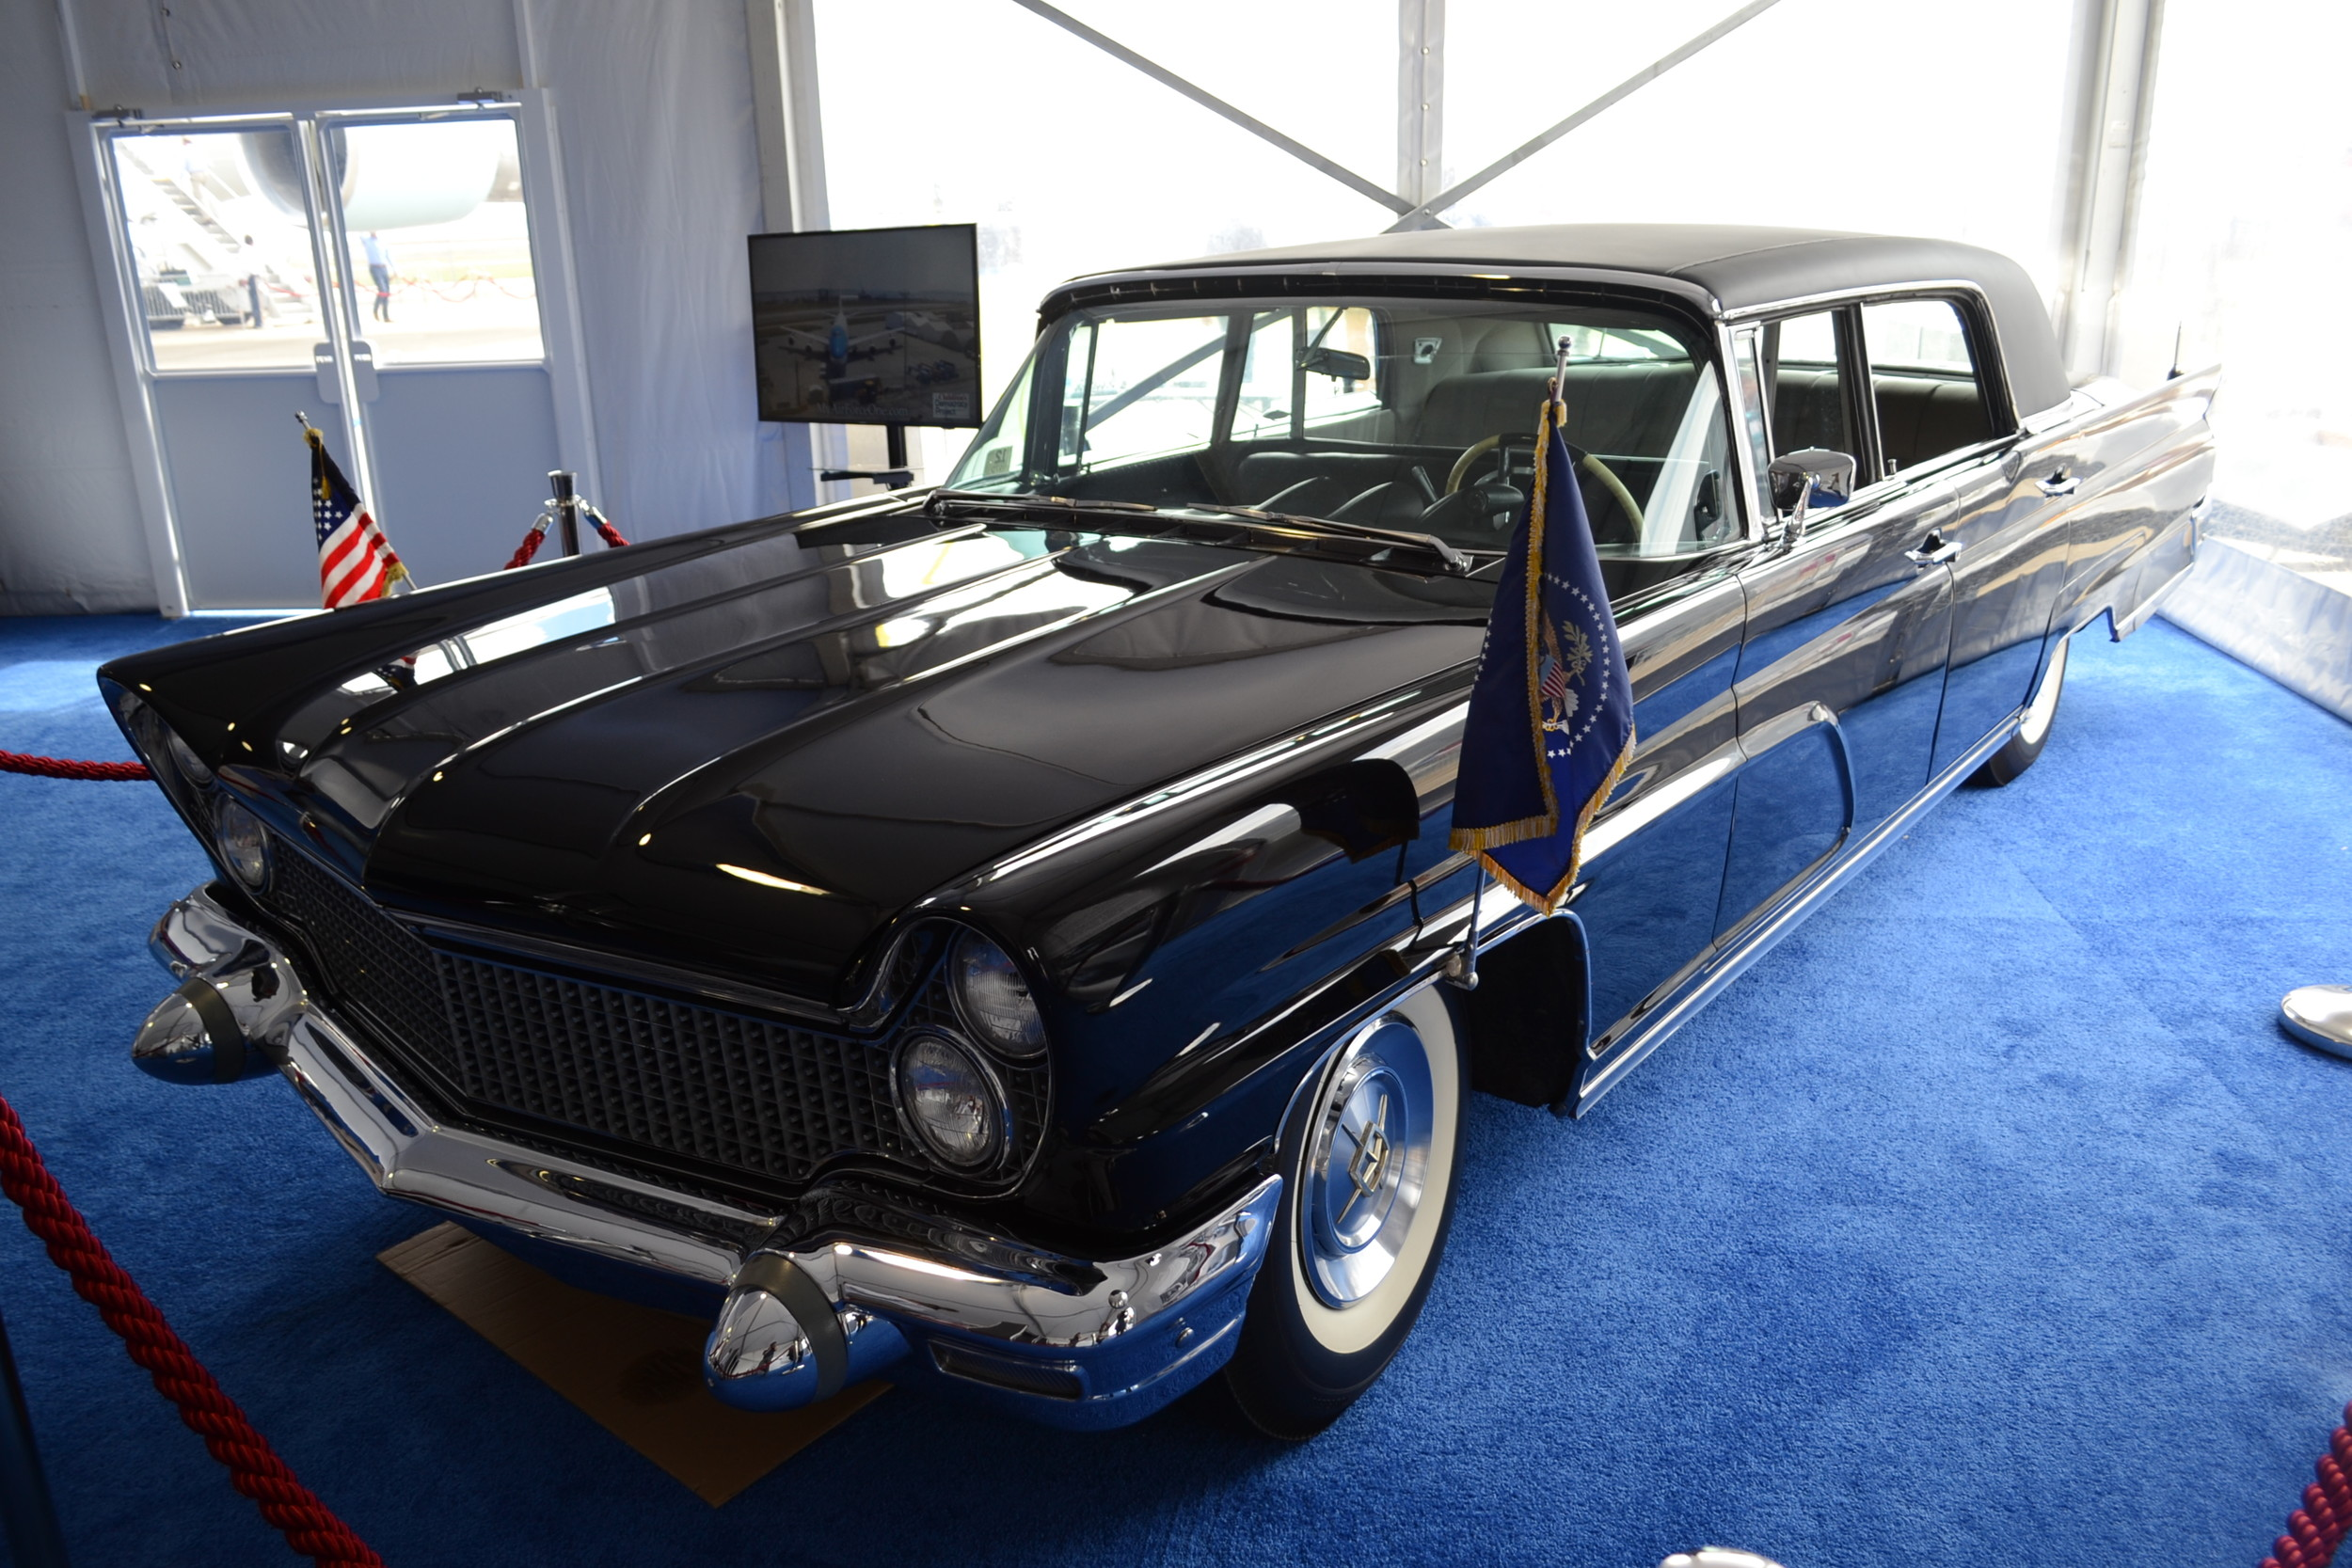 This 1960 Lincoln Continental Limousine was used in John F. Kennedy's motorcade in Washington D.C.